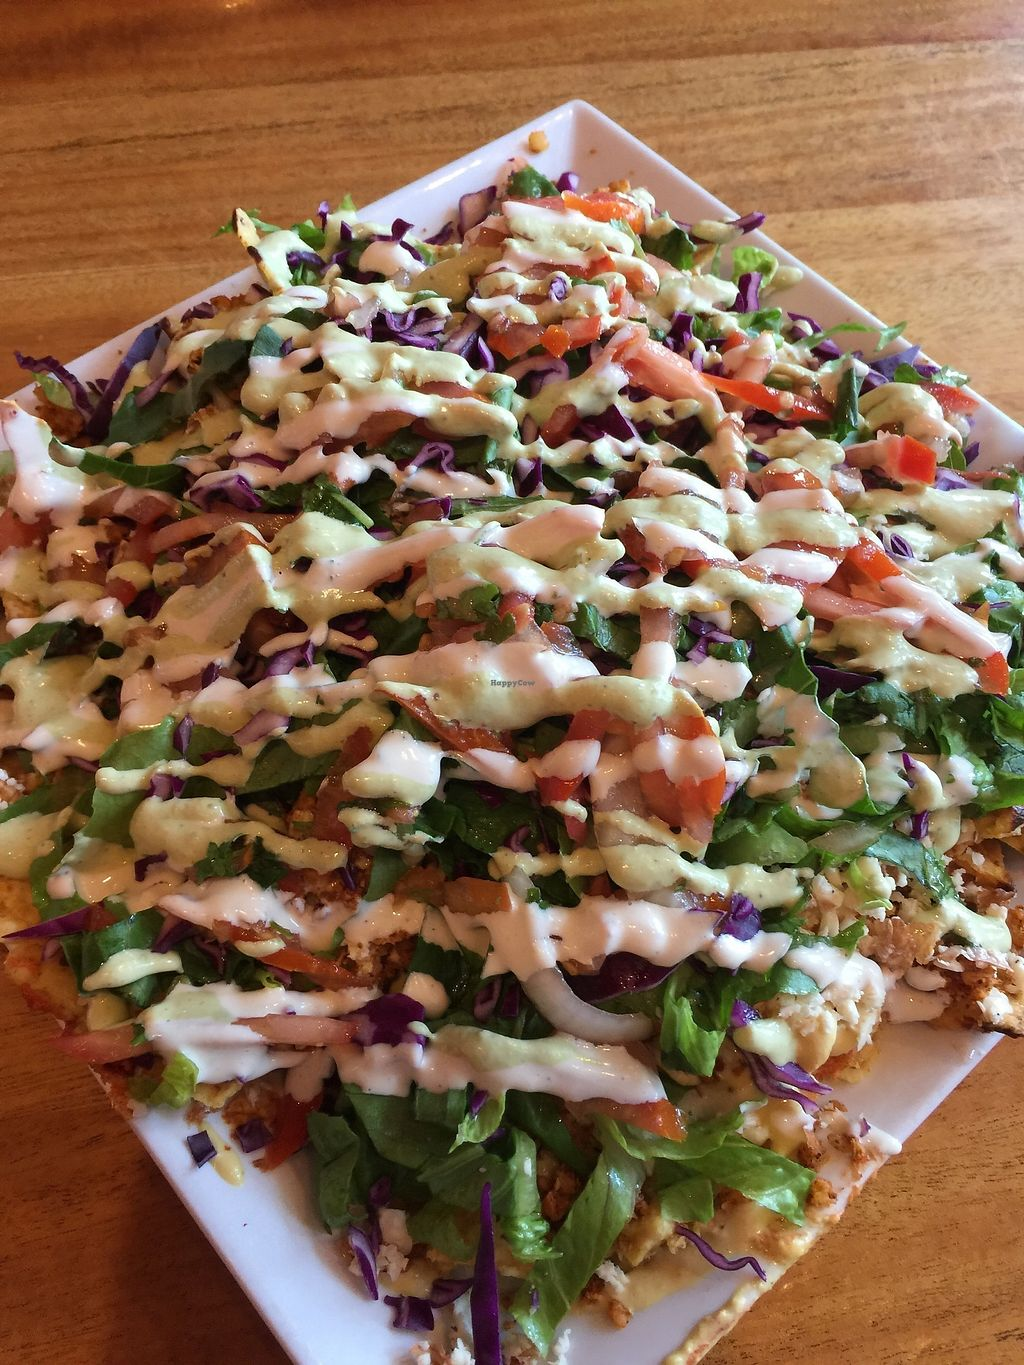 """Photo of Viva  by <a href=""""/members/profile/blissful_adventurer"""">blissful_adventurer</a> <br/>Full order of nachos is enough to fill up multiple people!! They are delicious and probably the best nachos we'ver ever had.  <br/> September 2, 2017  - <a href='/contact/abuse/image/51096/300274'>Report</a>"""